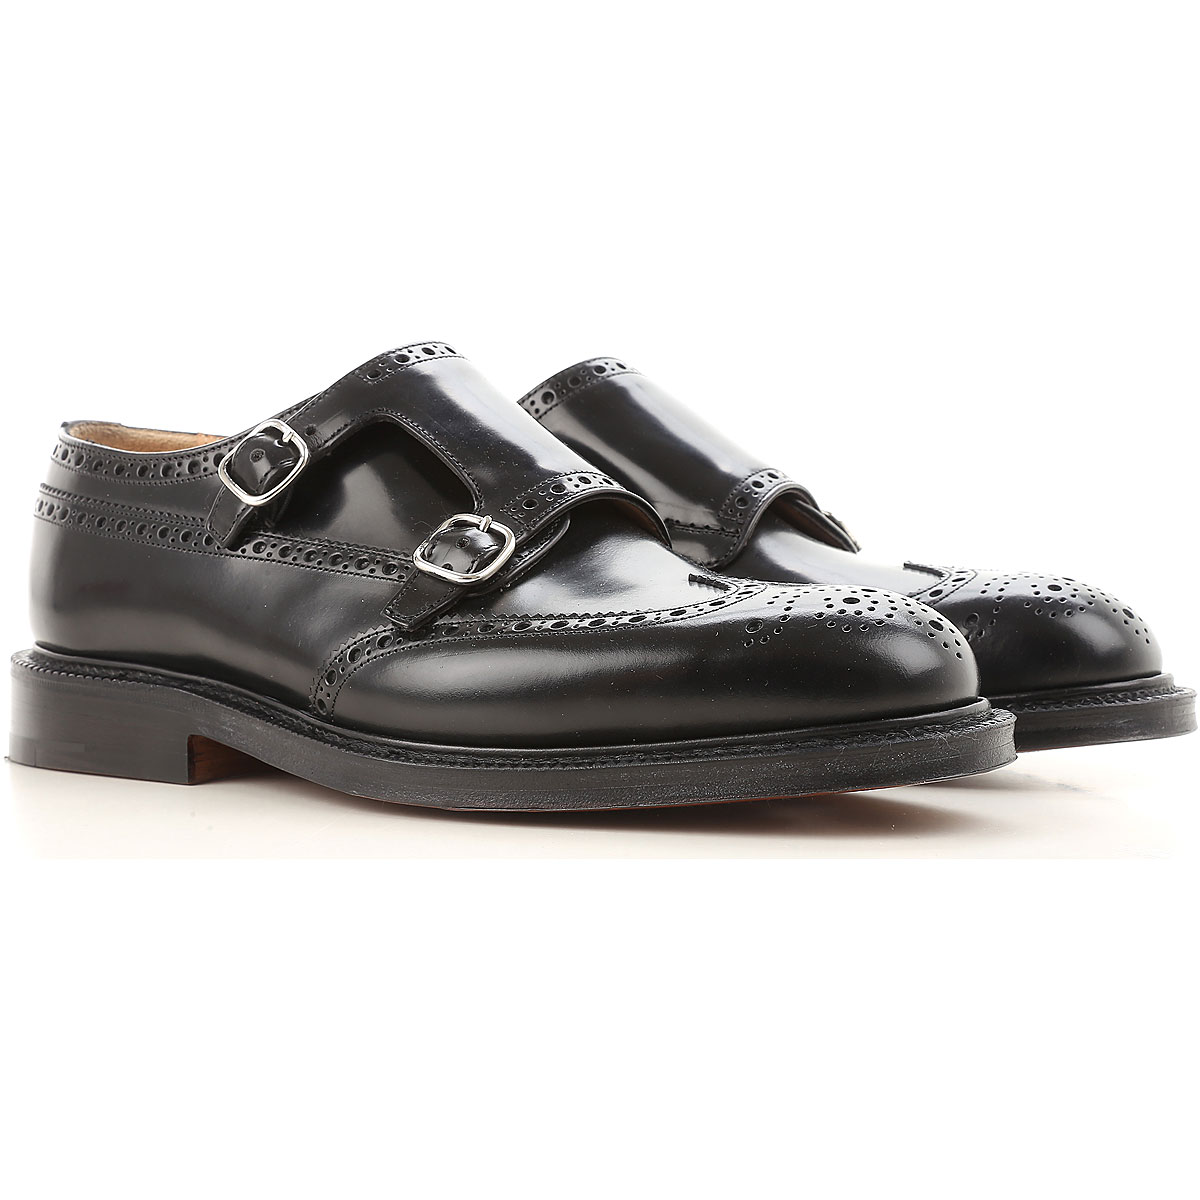 Image of Church's Monk Strap Shoes for Men On Sale, Black, Leather, 2017, 11 7